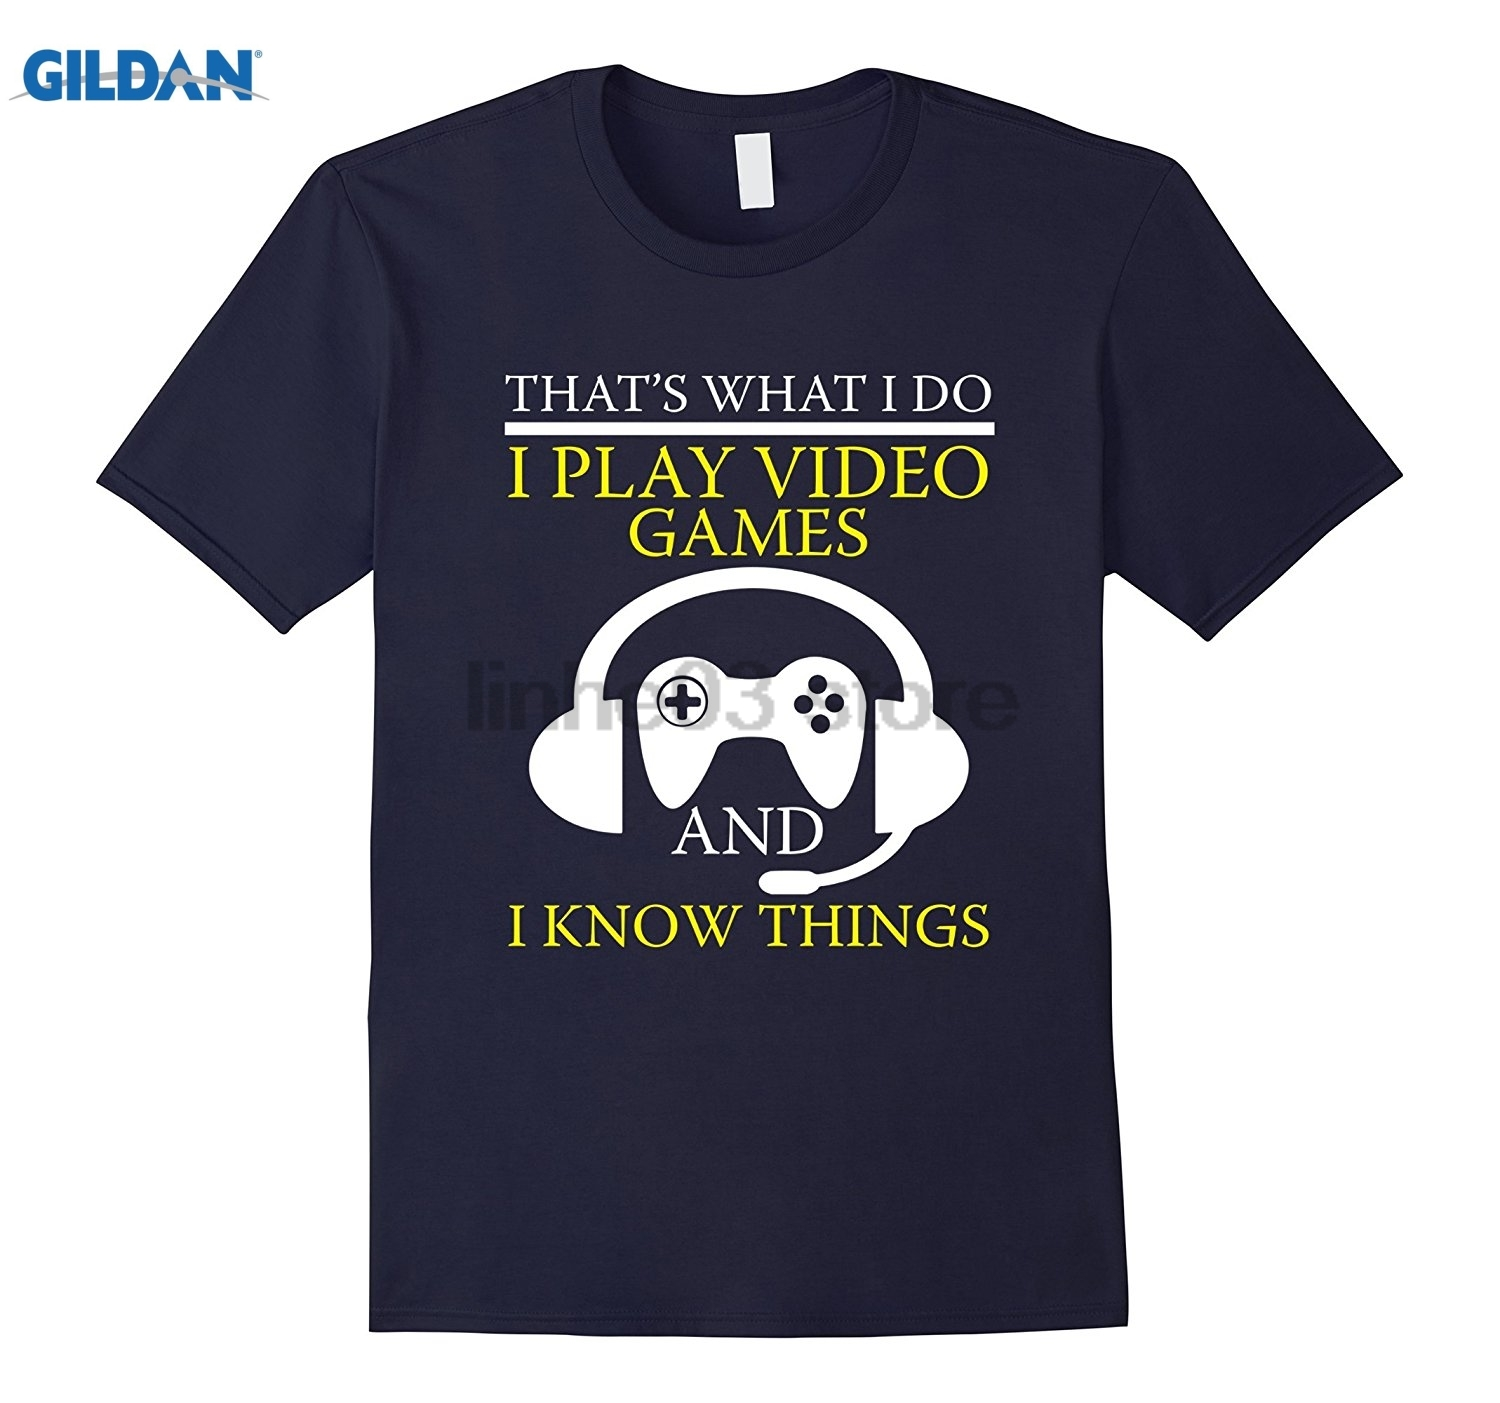 GILDAN FUNNY PLAY VIDEO GAMES AND I KNOW THINGS T-SHIRT Geek Gift Hot Womens T-shirt ...